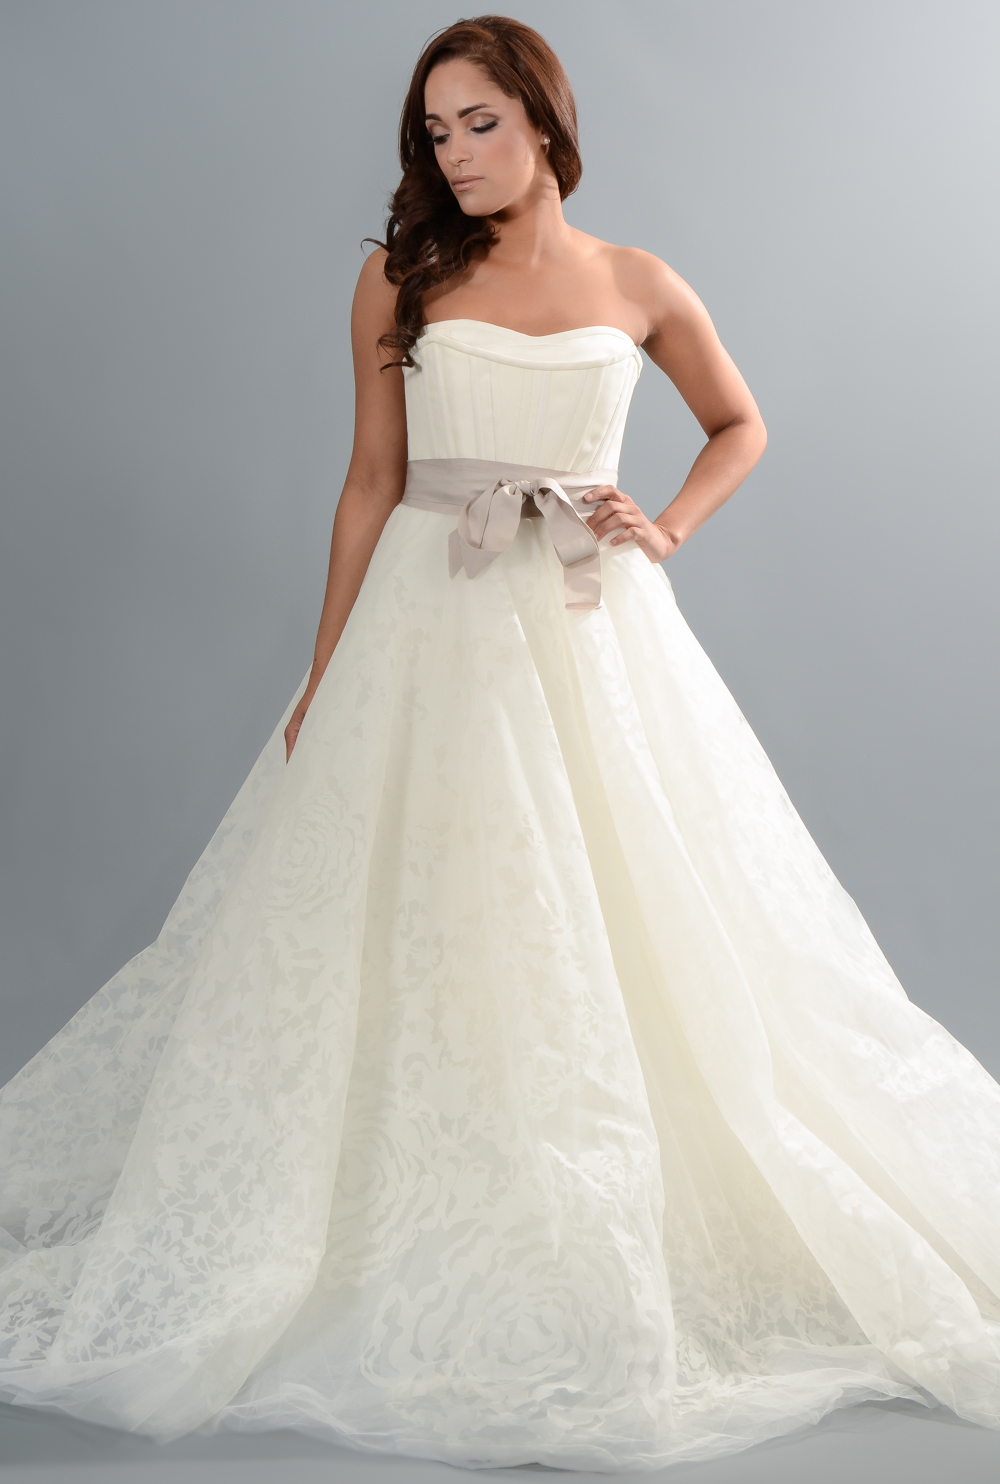 Boston wedding vendor spotlight vows bridal outlet for Wedding dresses boston cheap